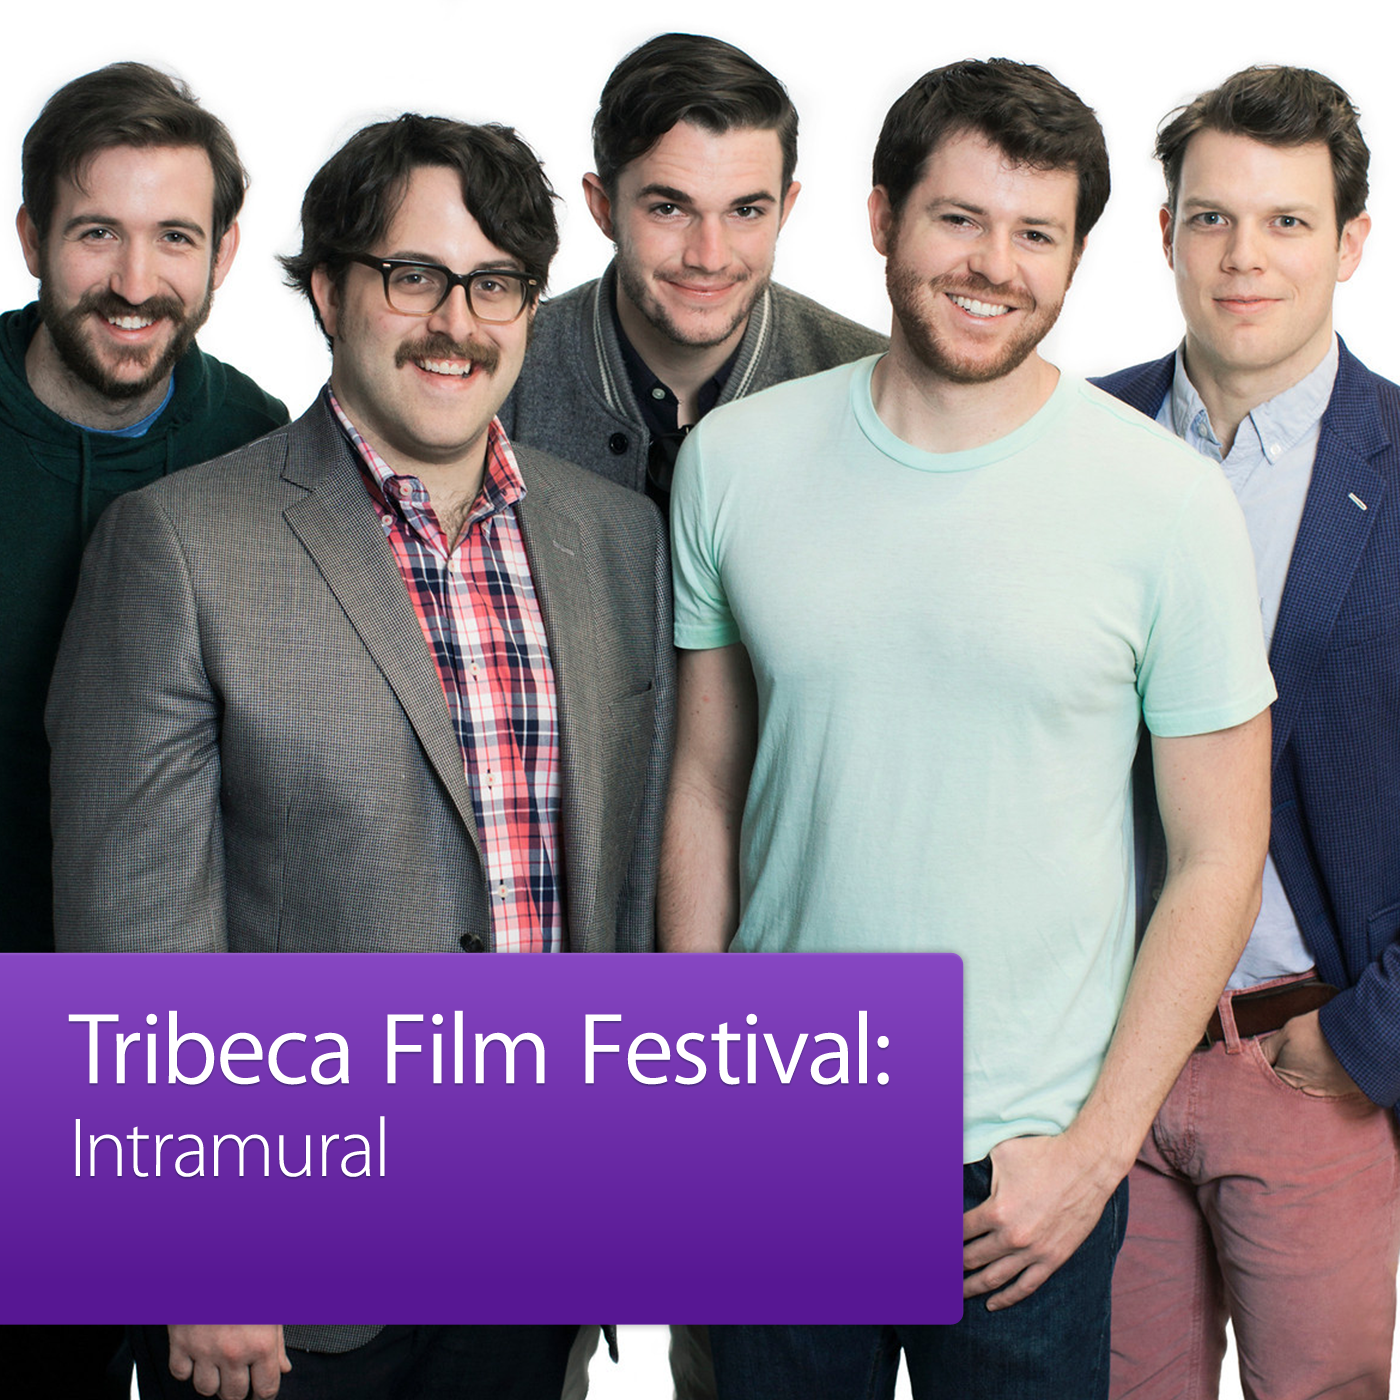 Intramural: Tribeca Film Festival